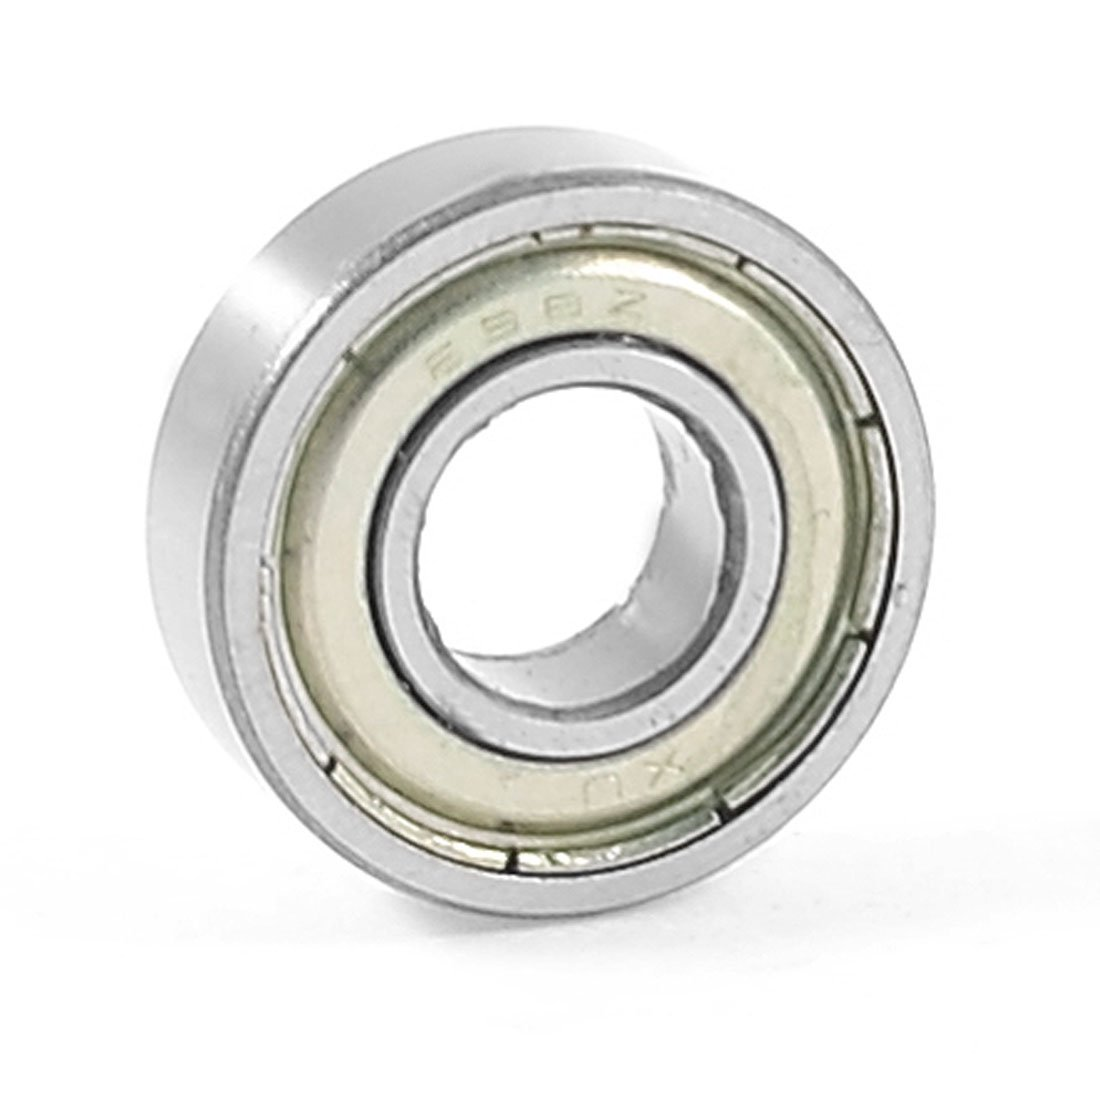 698Z Metal Sealed Deep Groove Ball Bearing 19mm x 8mm x 6mm Sourcingmap a13050600ux0268